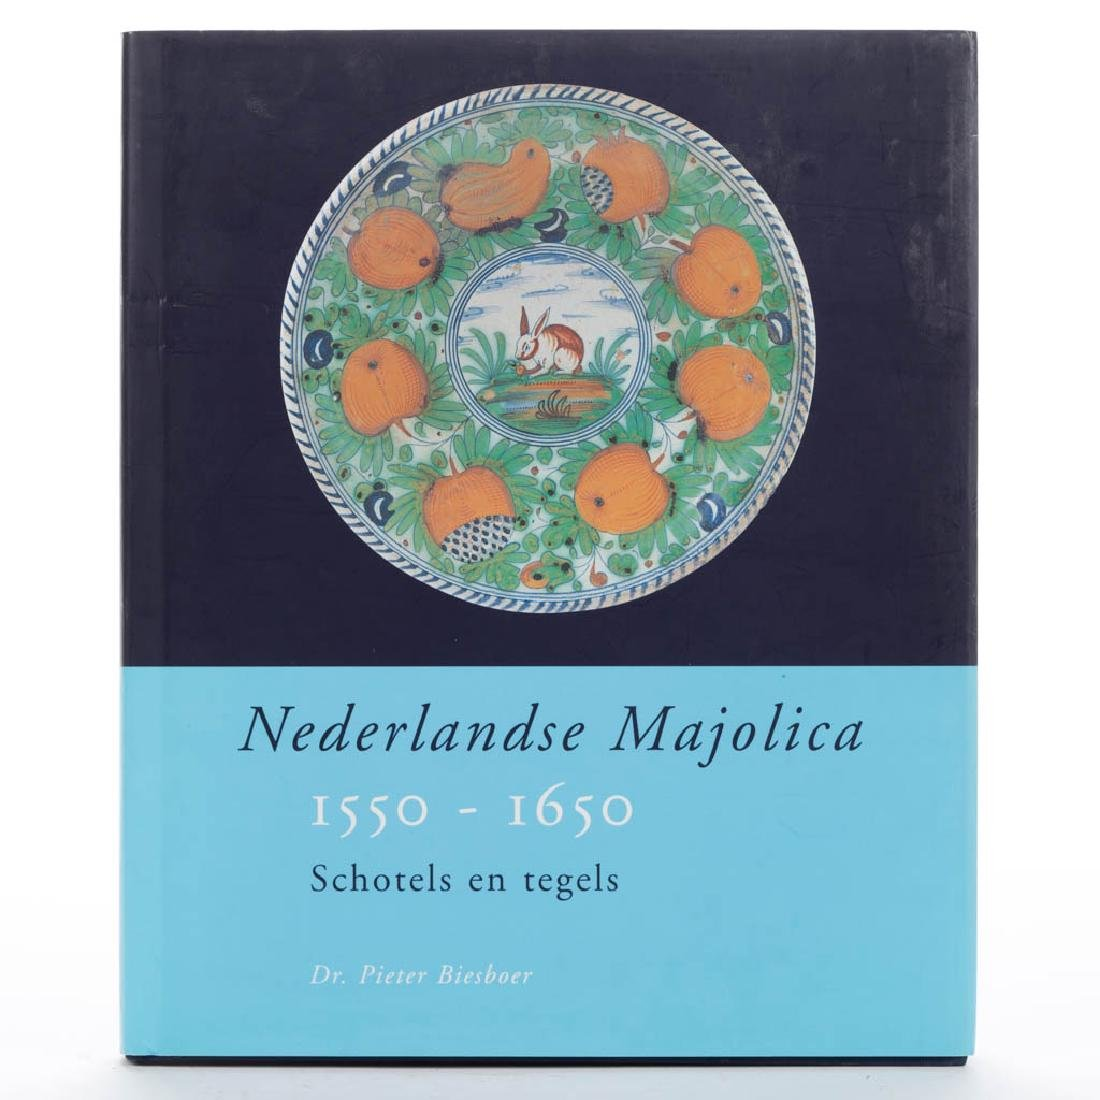 DUTCH DELFT / MAJOLICA CERAMIC VOLUME